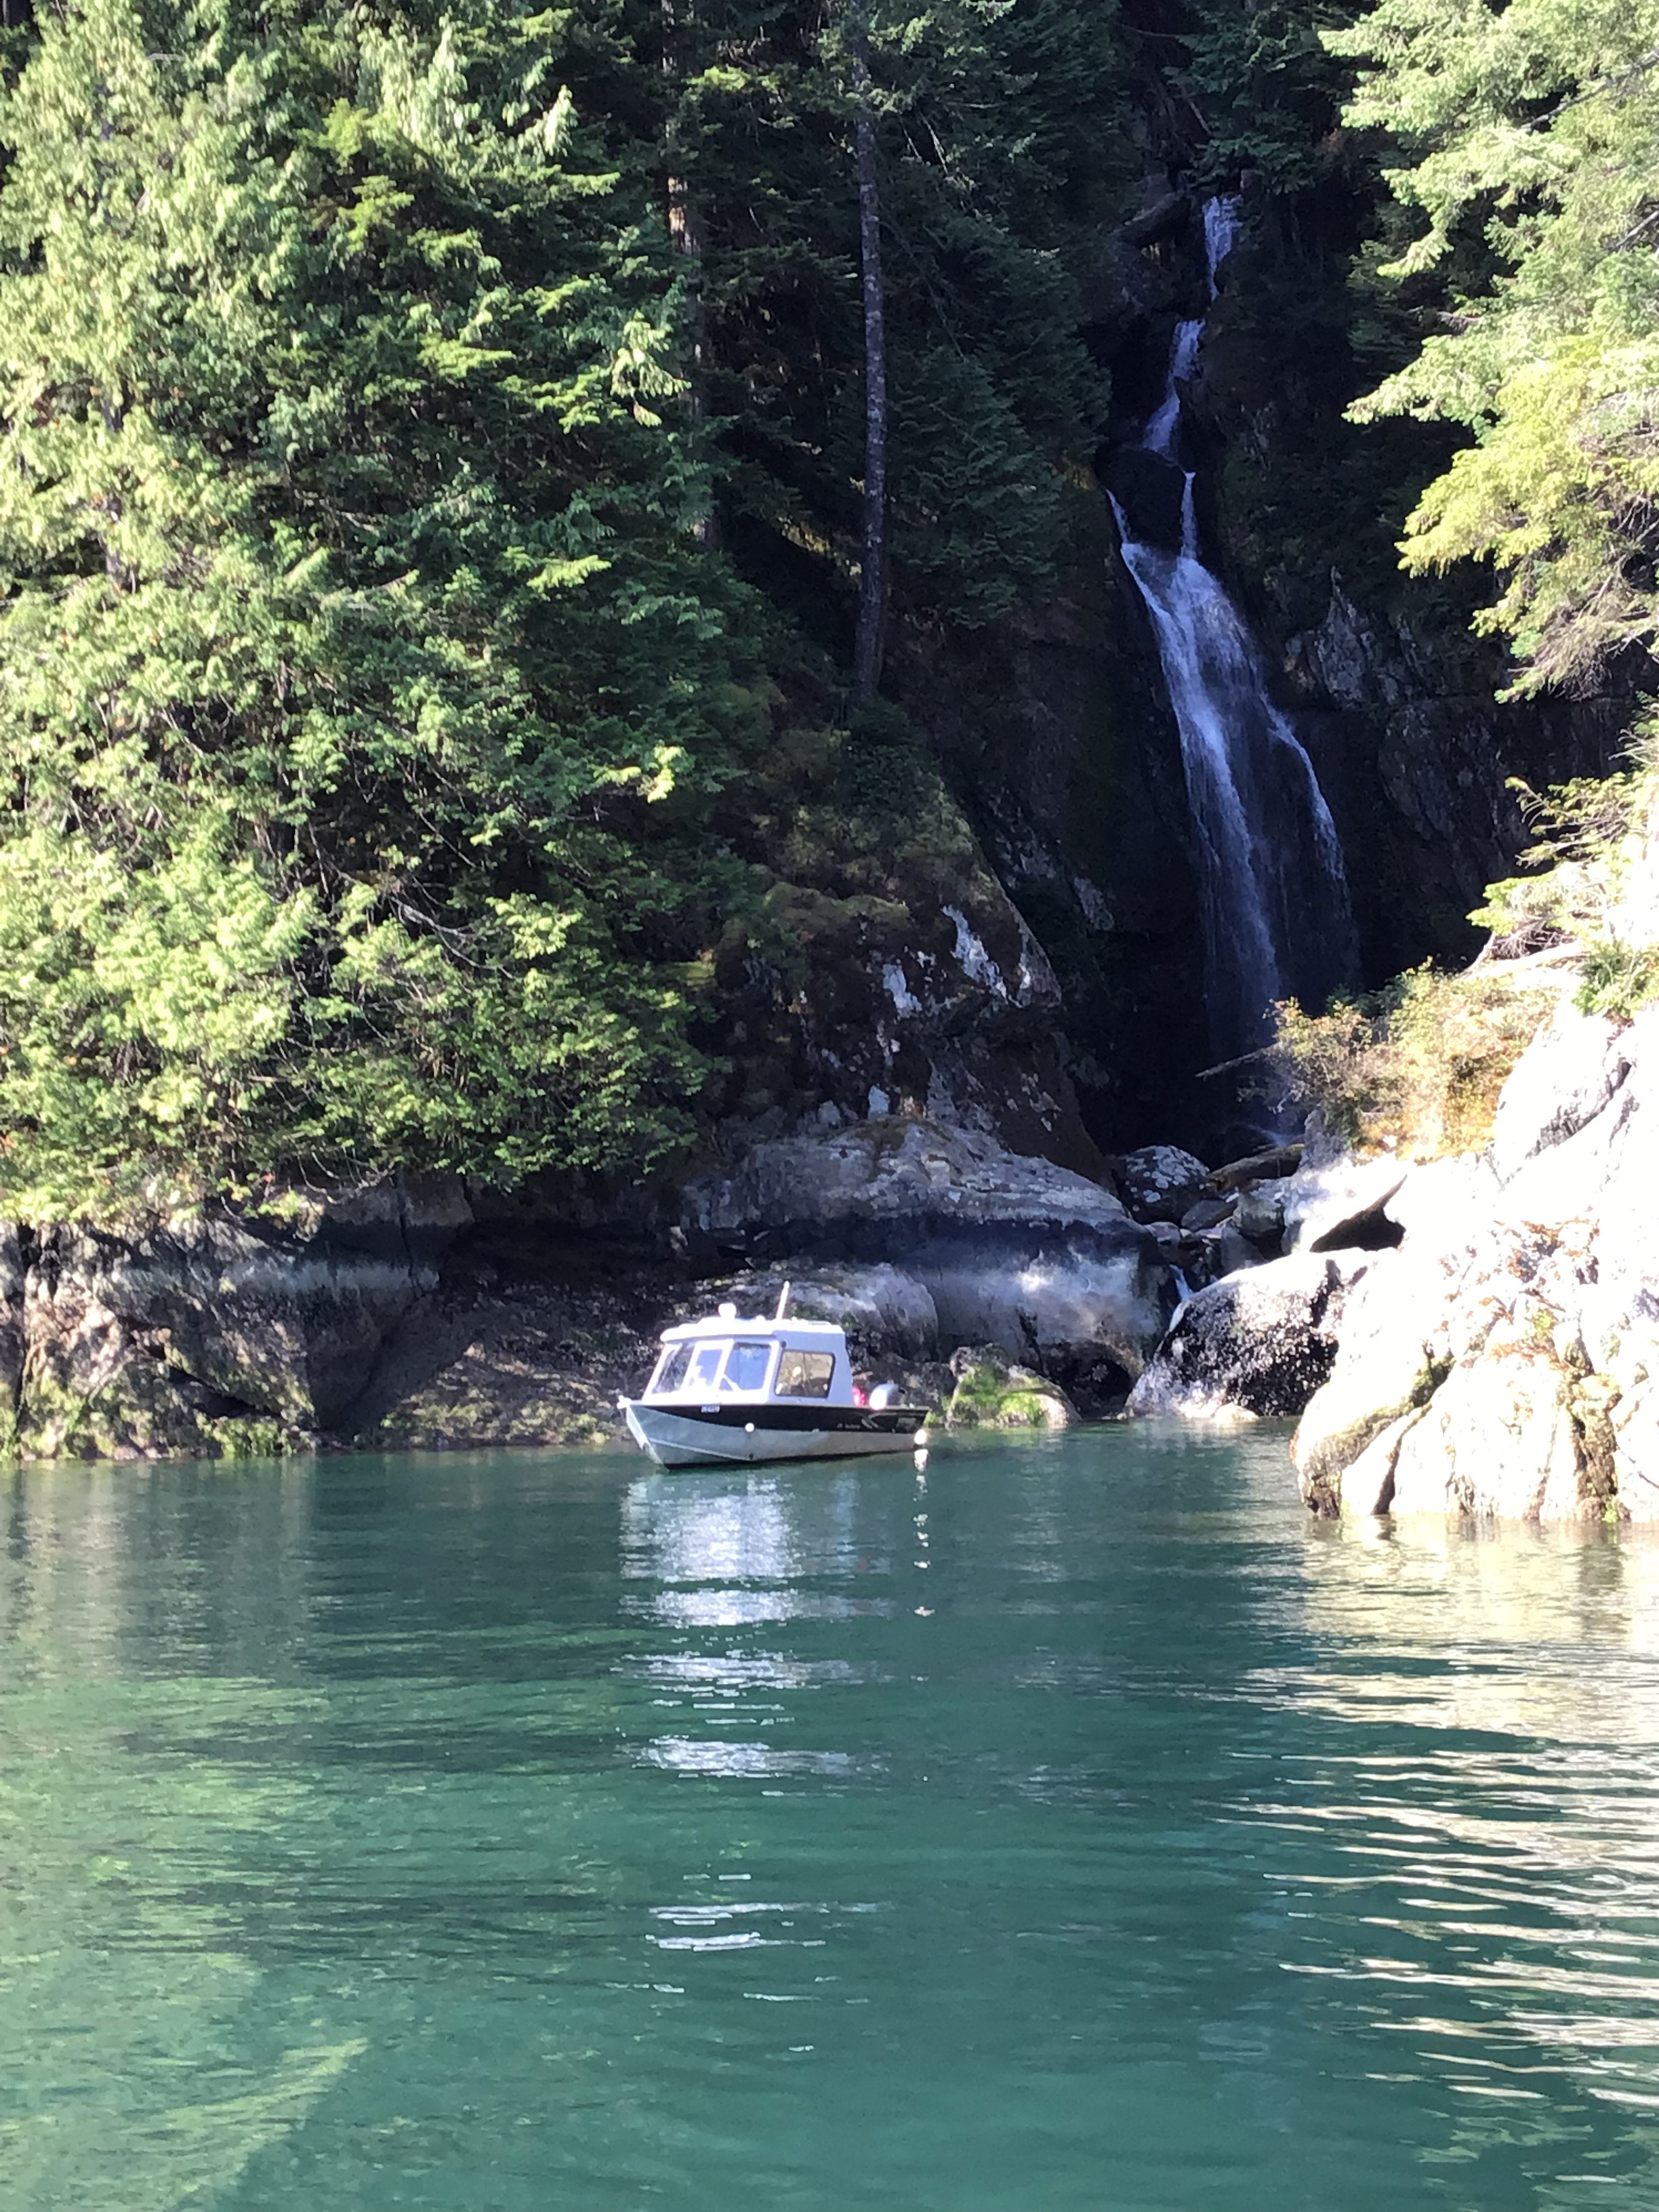 Have Indian Arm Boat Charters taxi you and your gear to Granite Falls, a free campground 12km from Deep Cove on westshore of Indian Arm.